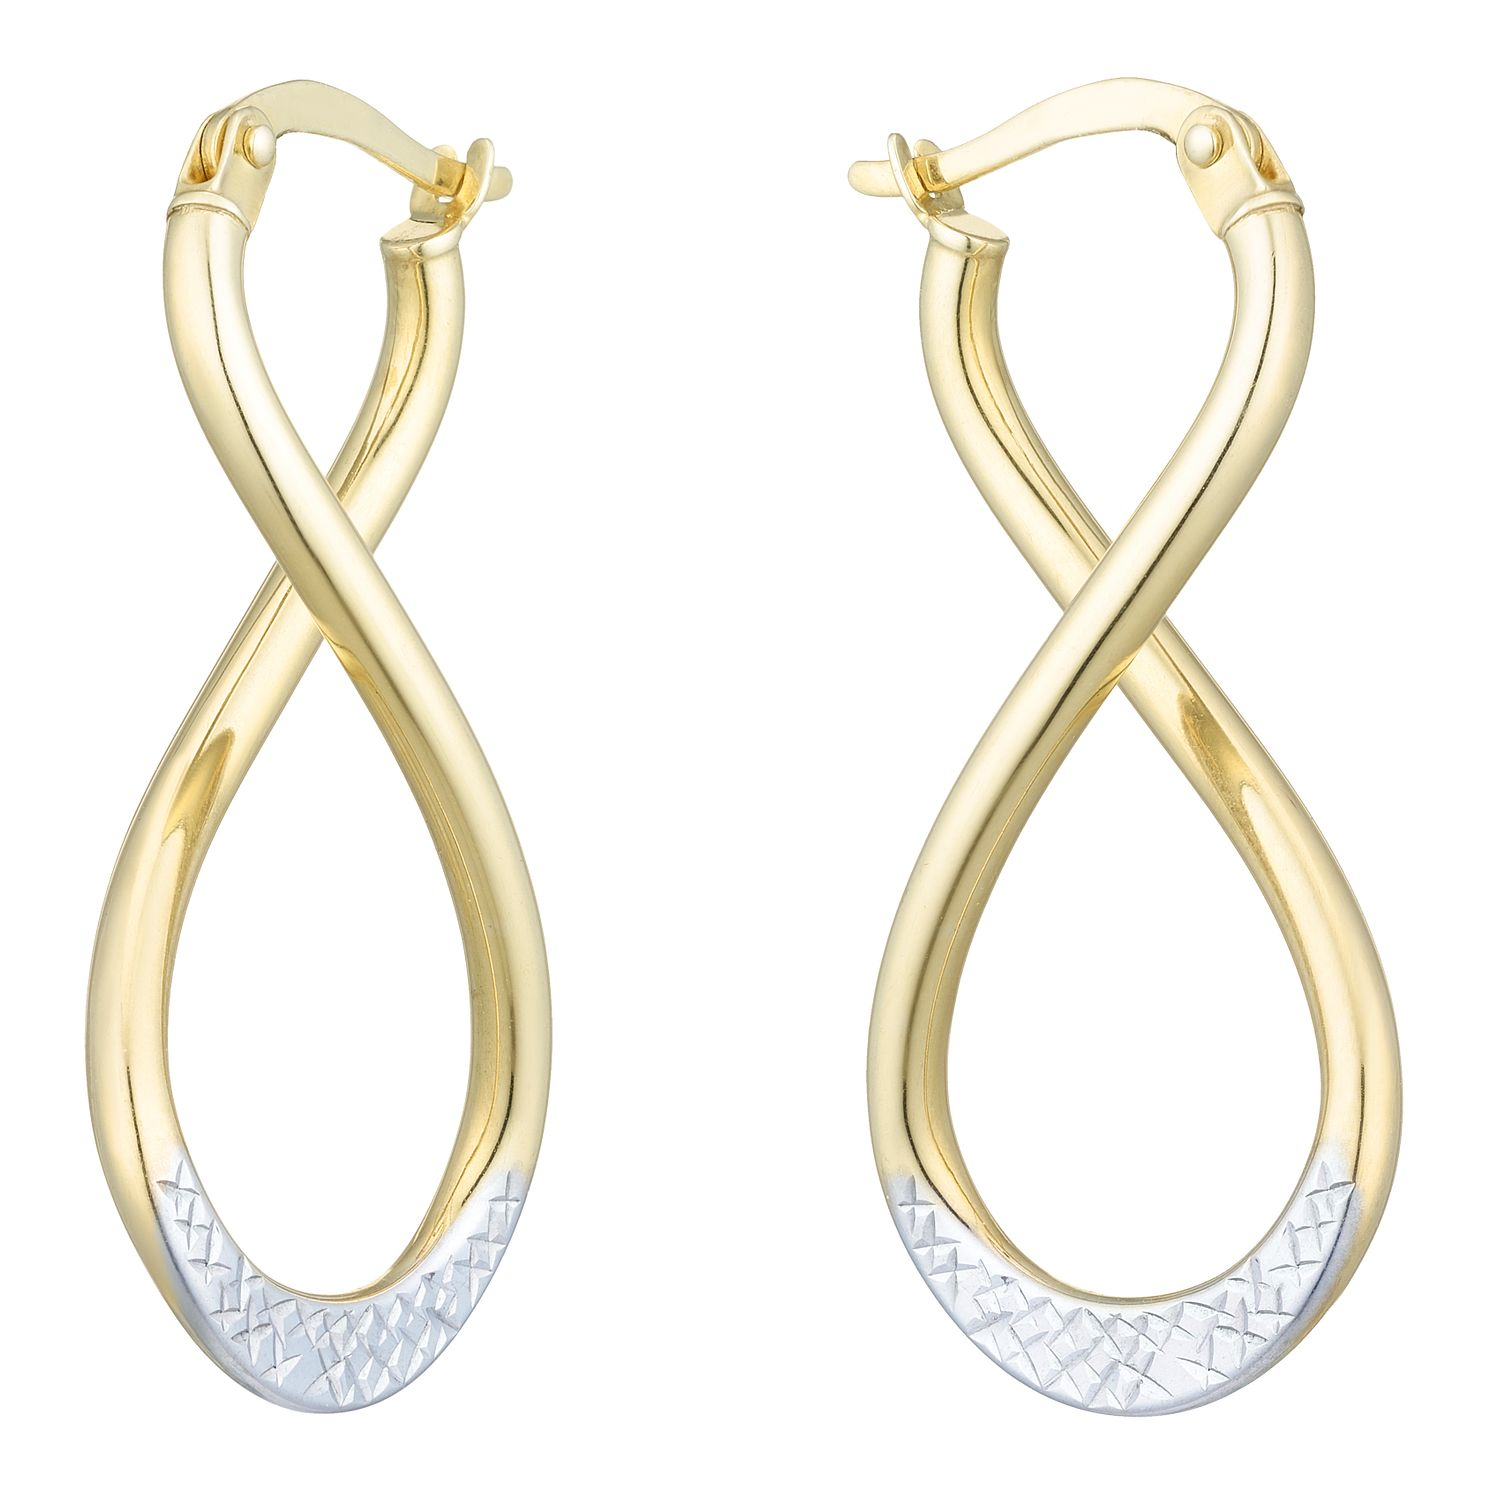 Together Silver & 9ct Bonded Gold Infinity Hoop Earrings - Product number 8110735